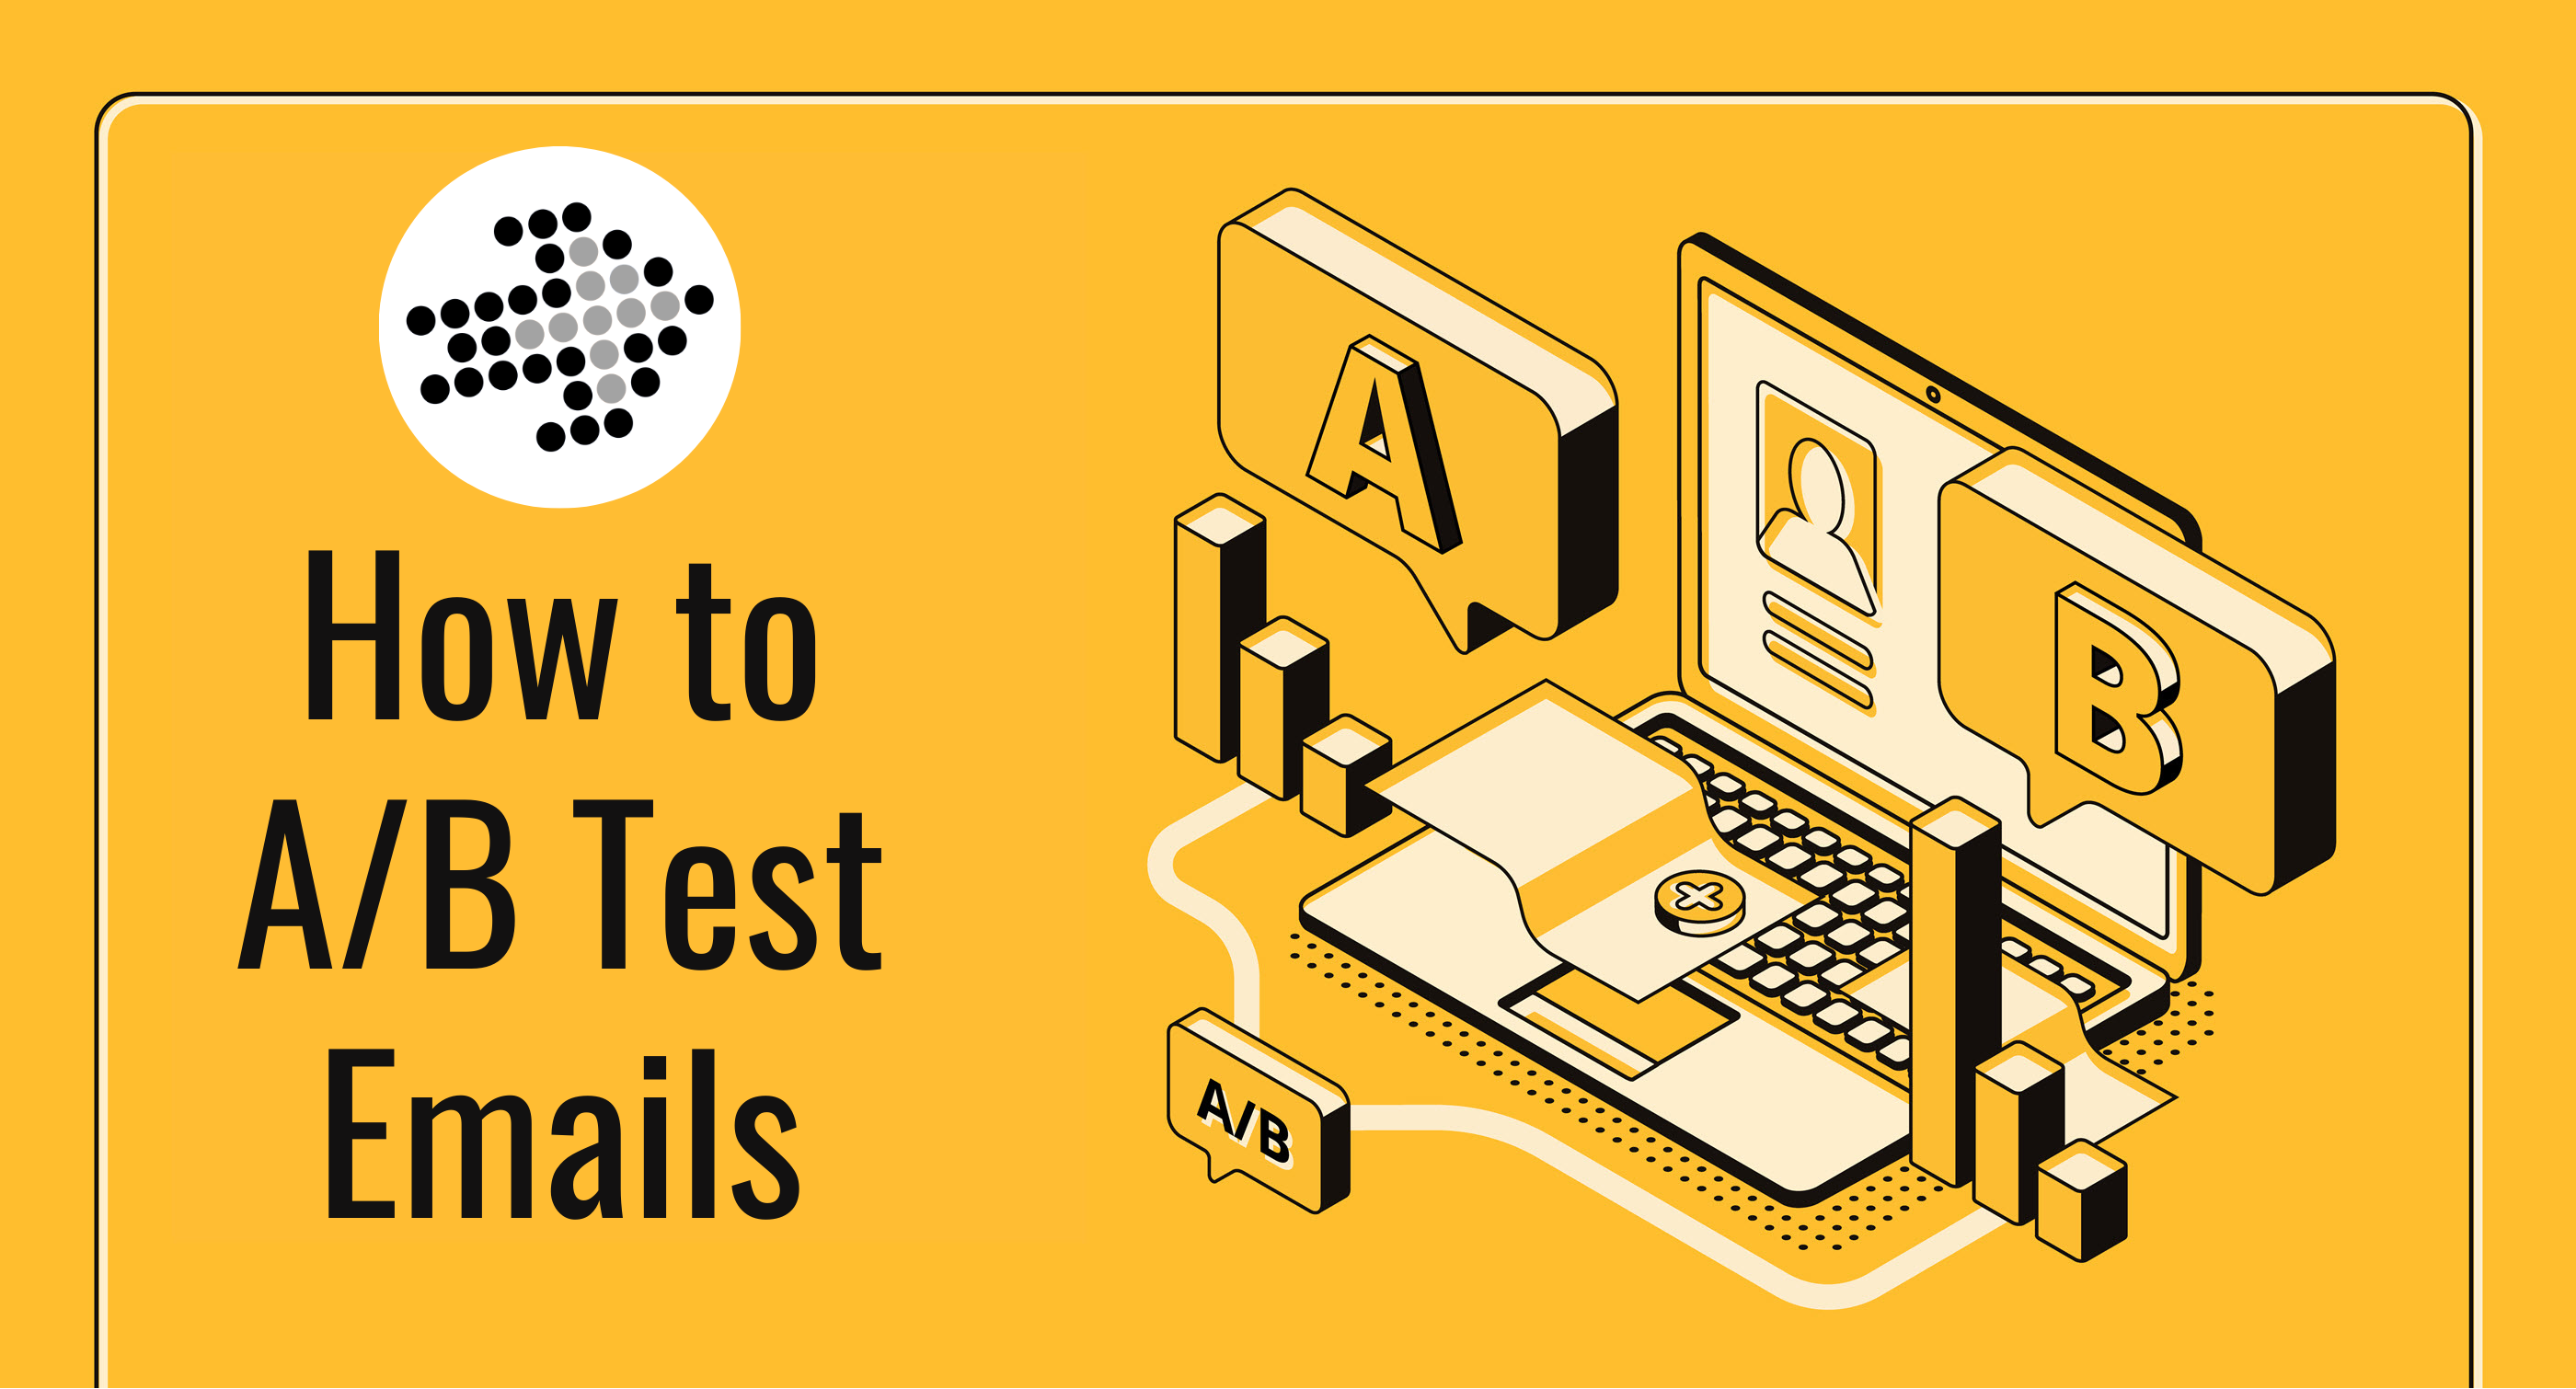 How to A_B Test Emails